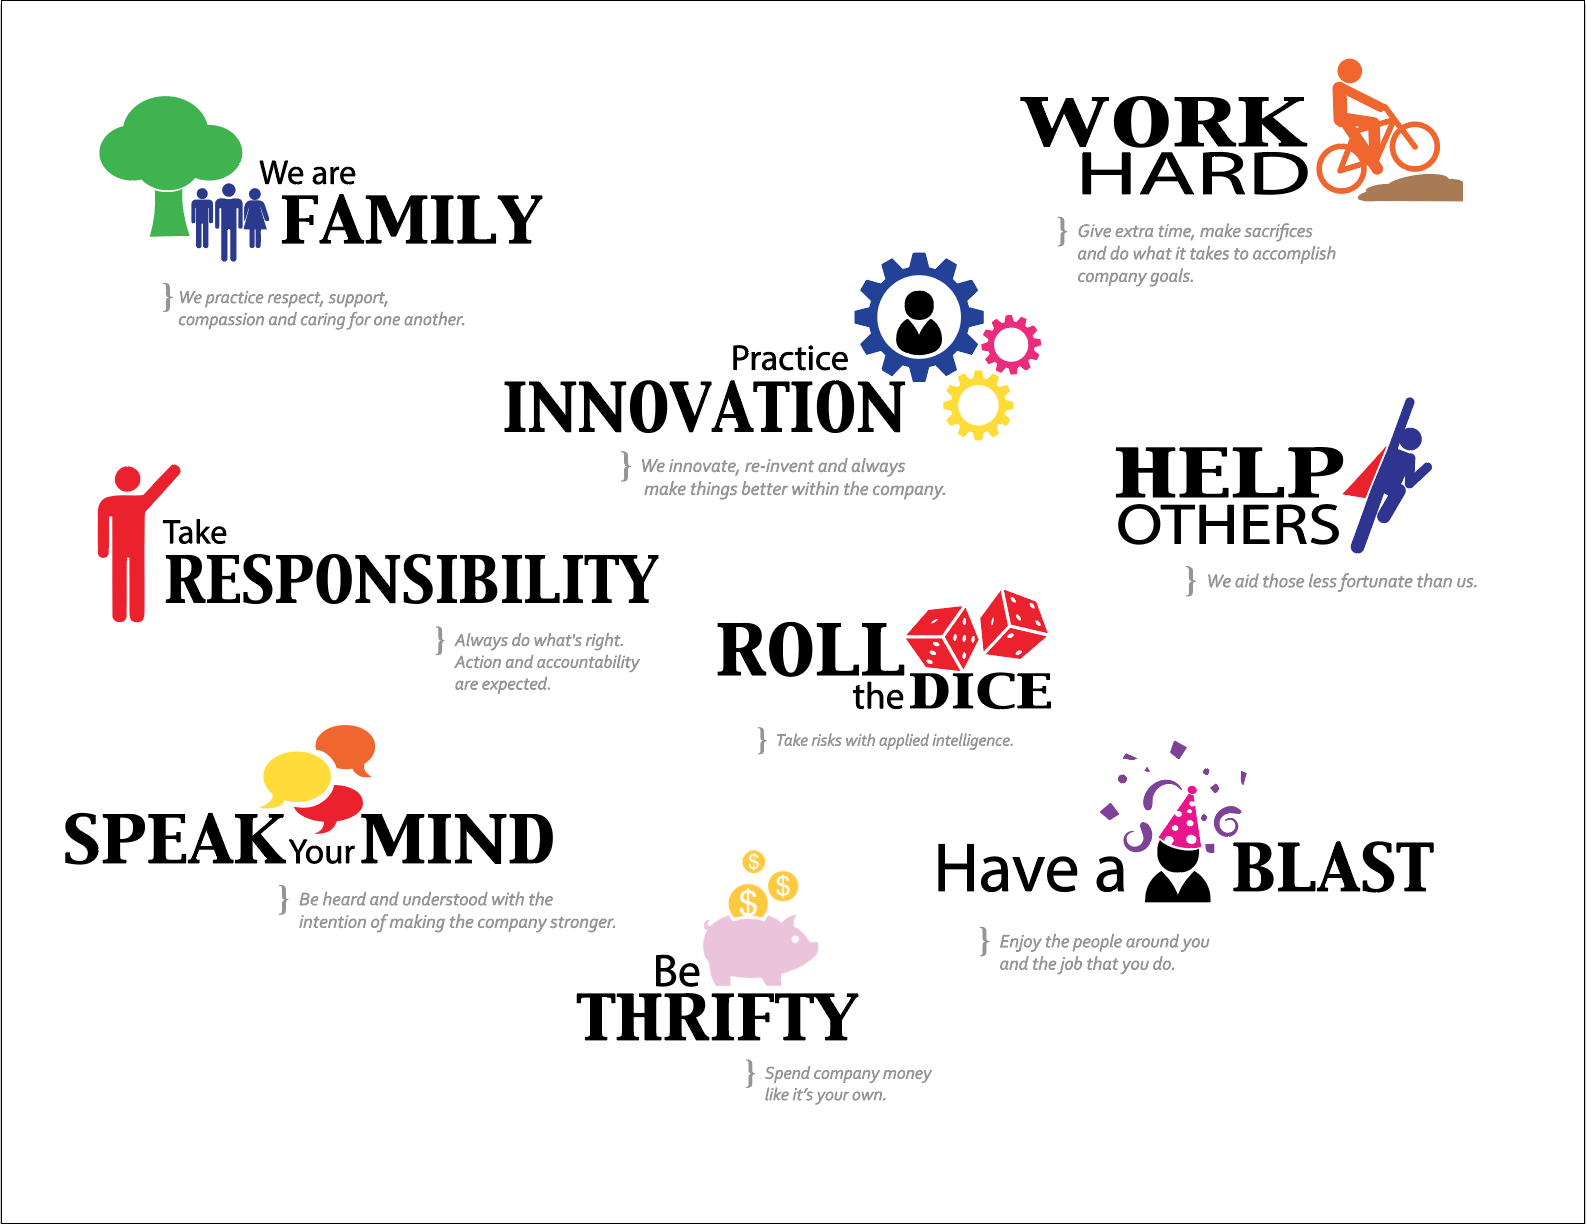 image with list of DPX company core values